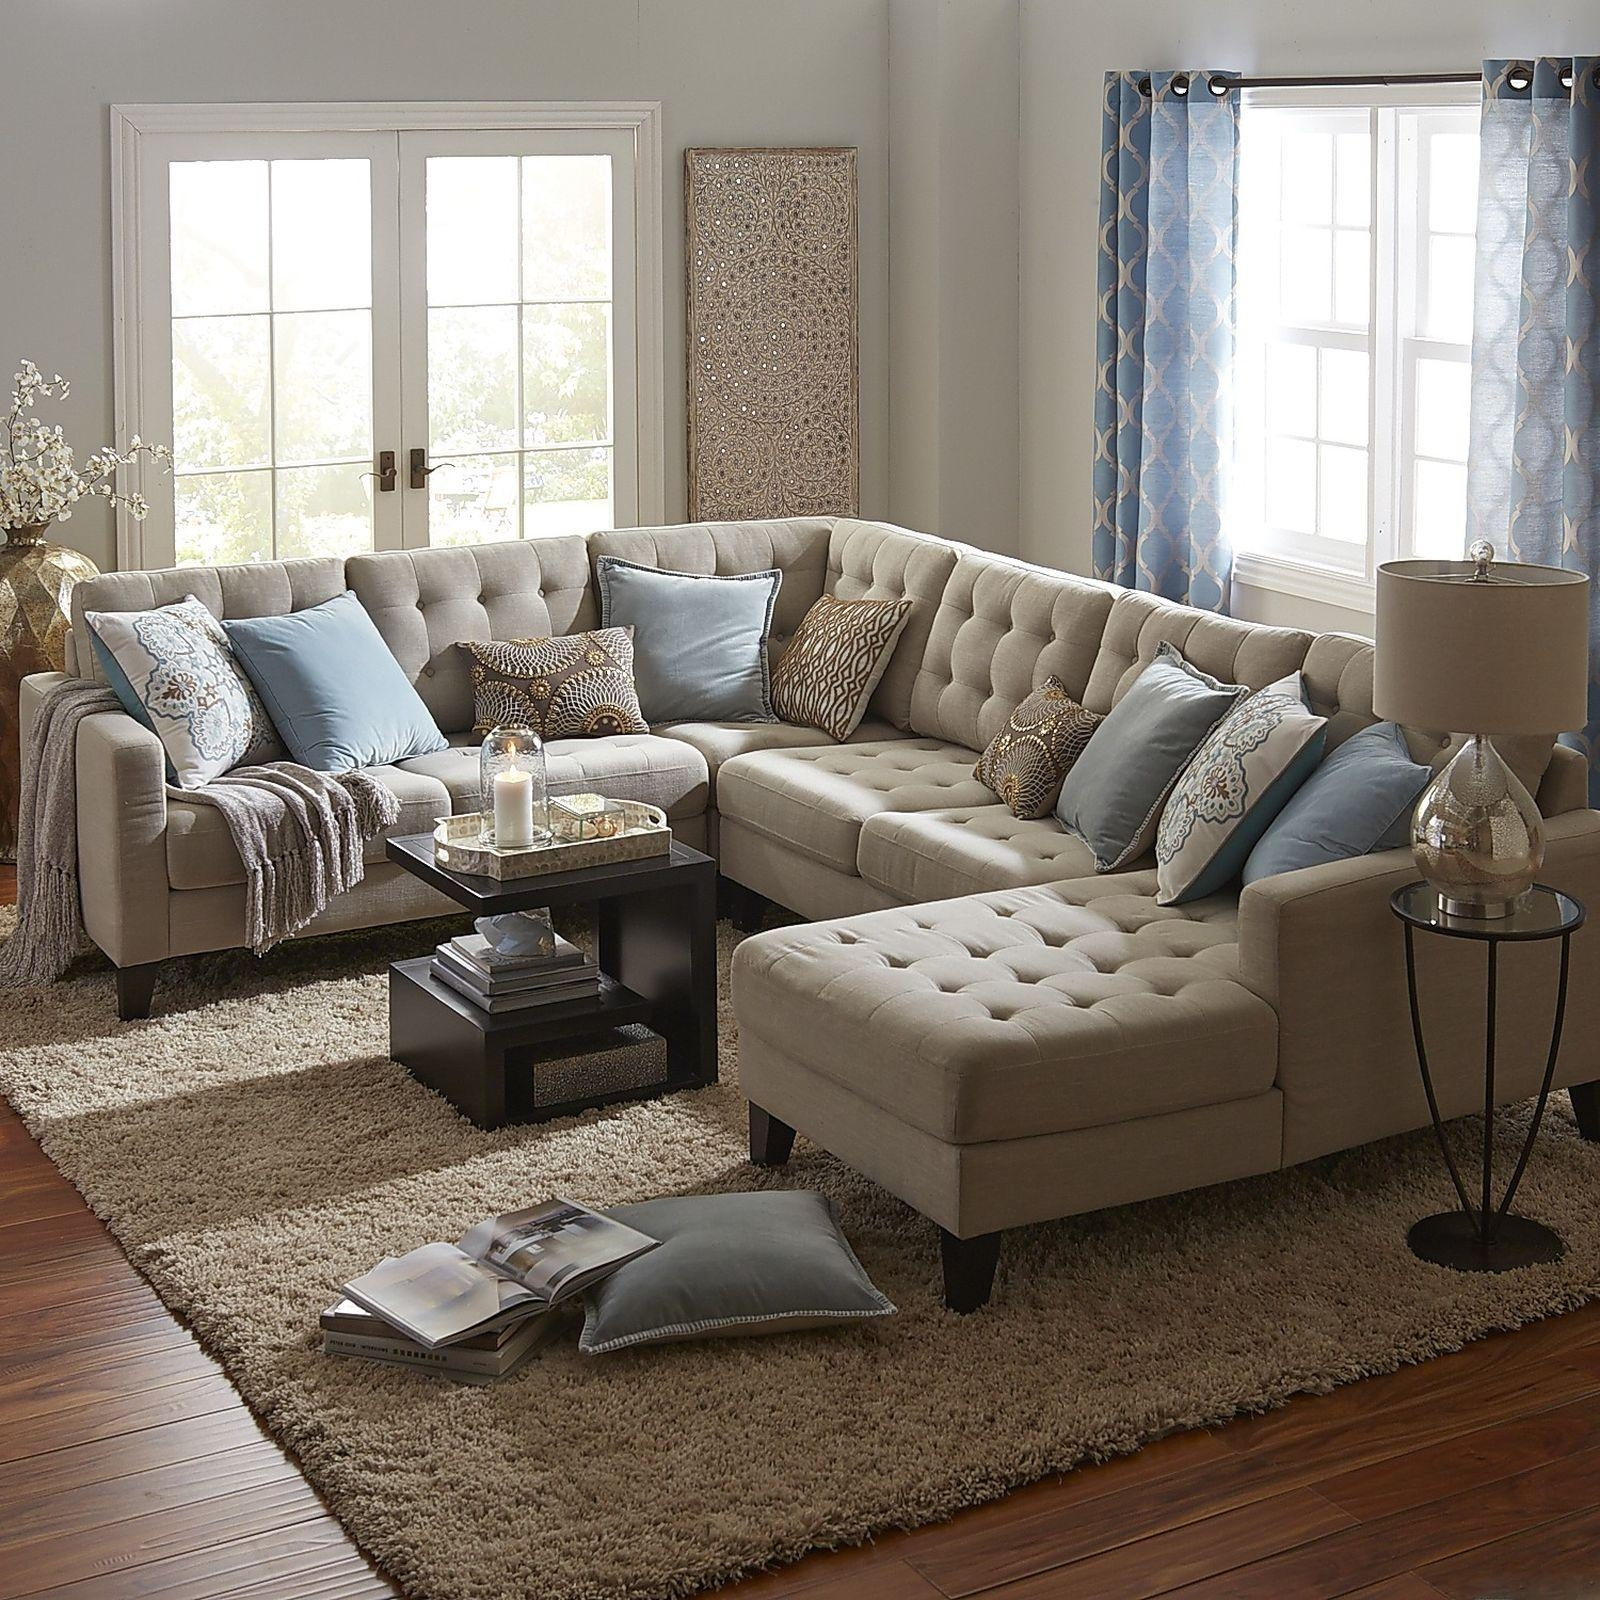 Sofas Center : Sofasnd Sectionals Fascinating Cheap U Shaped Pertaining To Media Sofa Sectionals (Image 19 of 20)